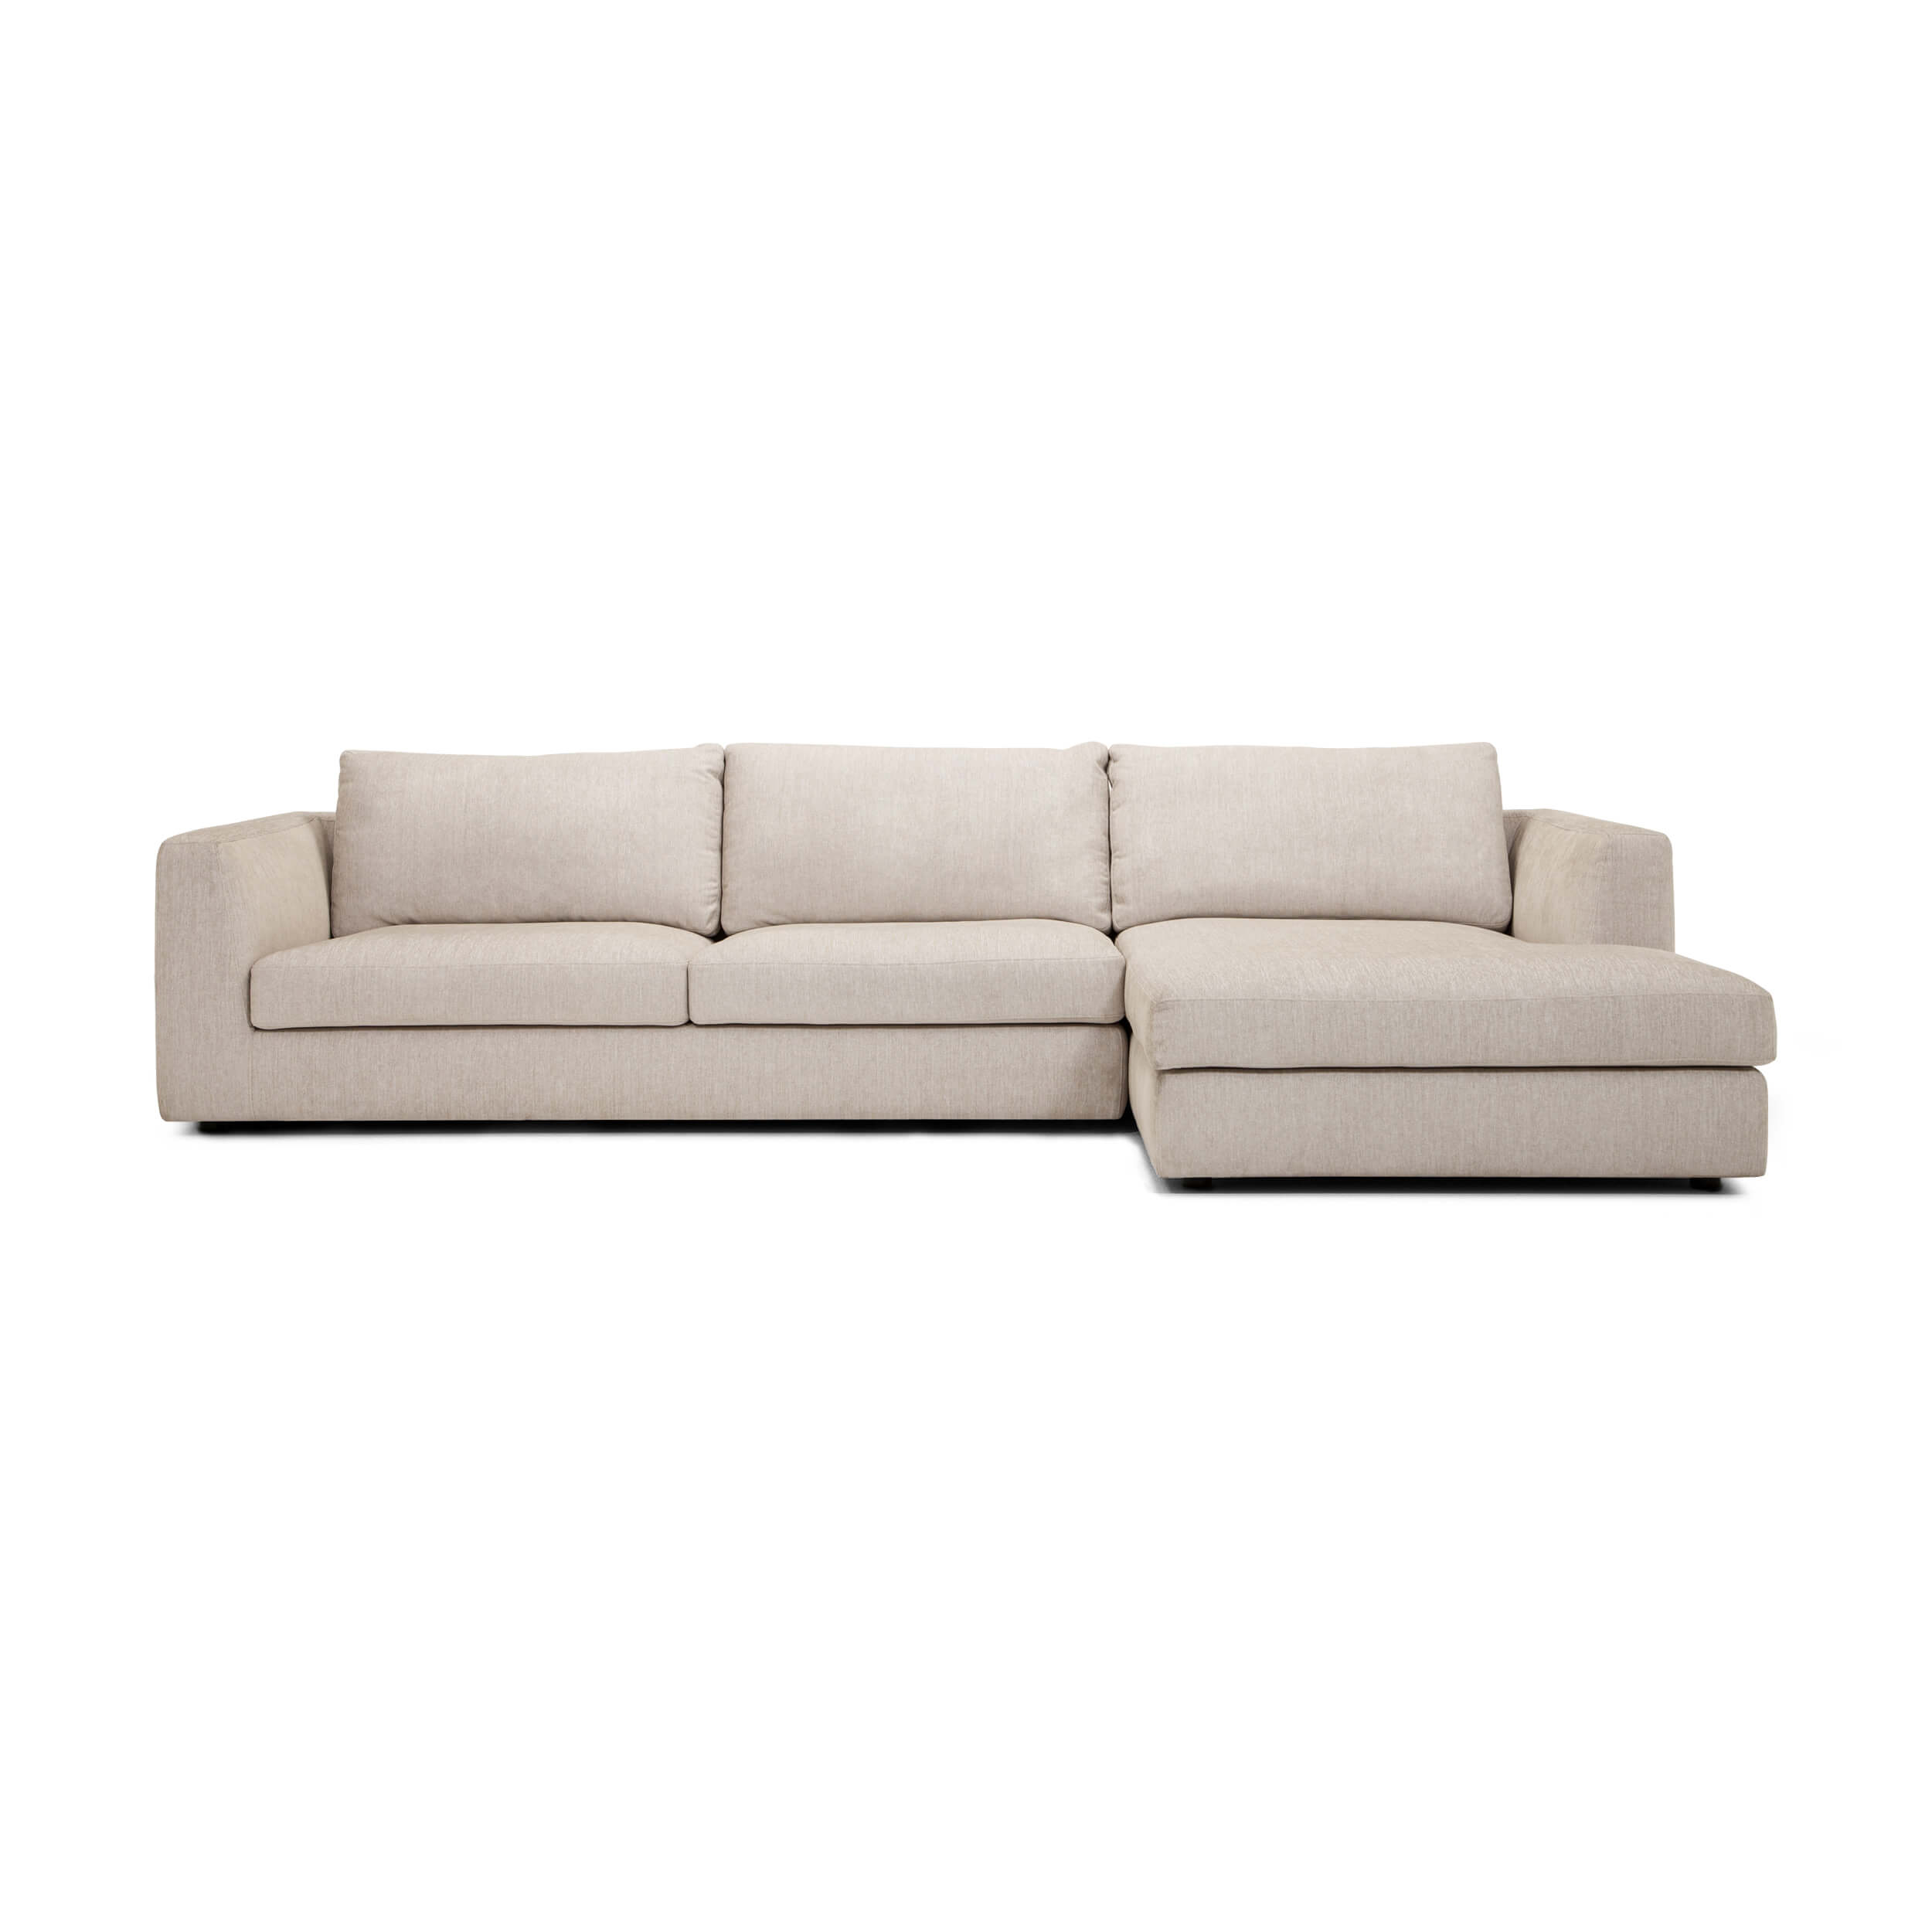 Cello 2-Piece Sectional Sofa With Chaise - Fabric